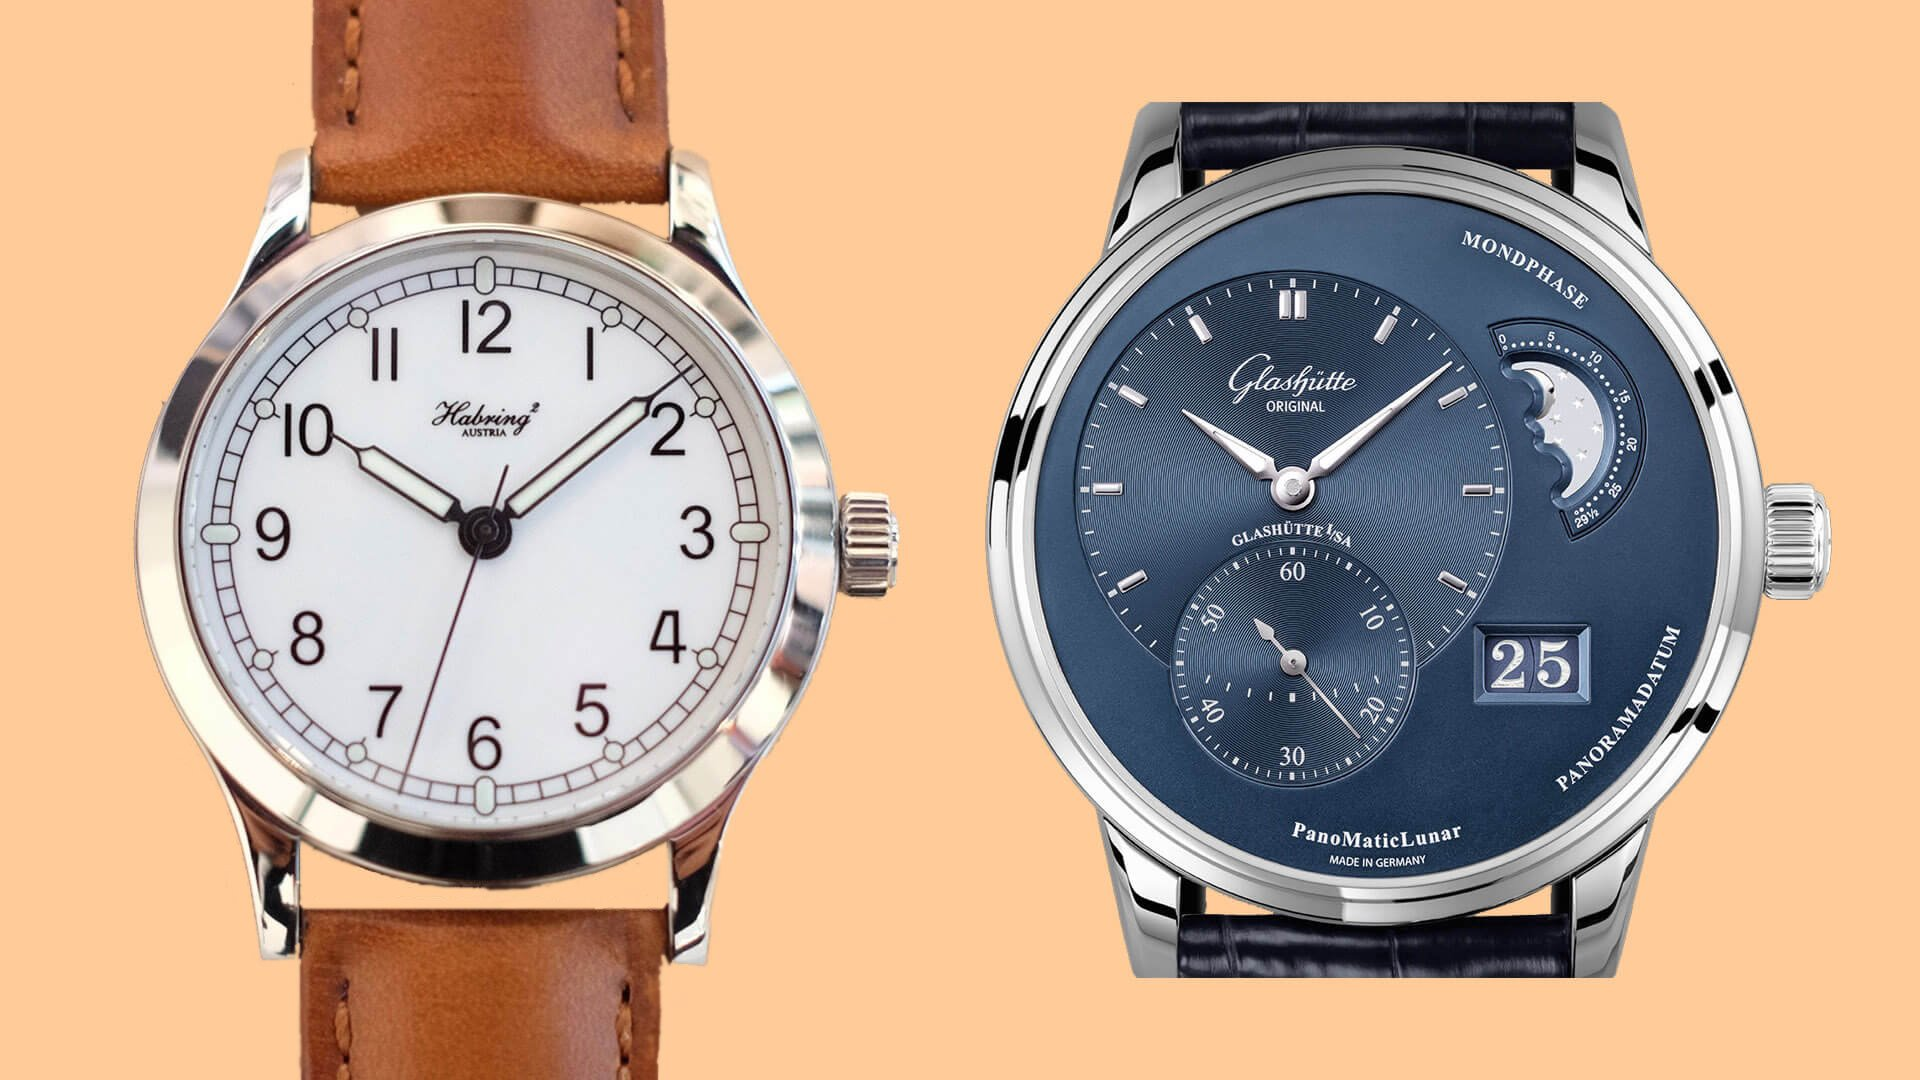 RANT&H: Most Underrated Watch Brands – Habring and Glashutte Original